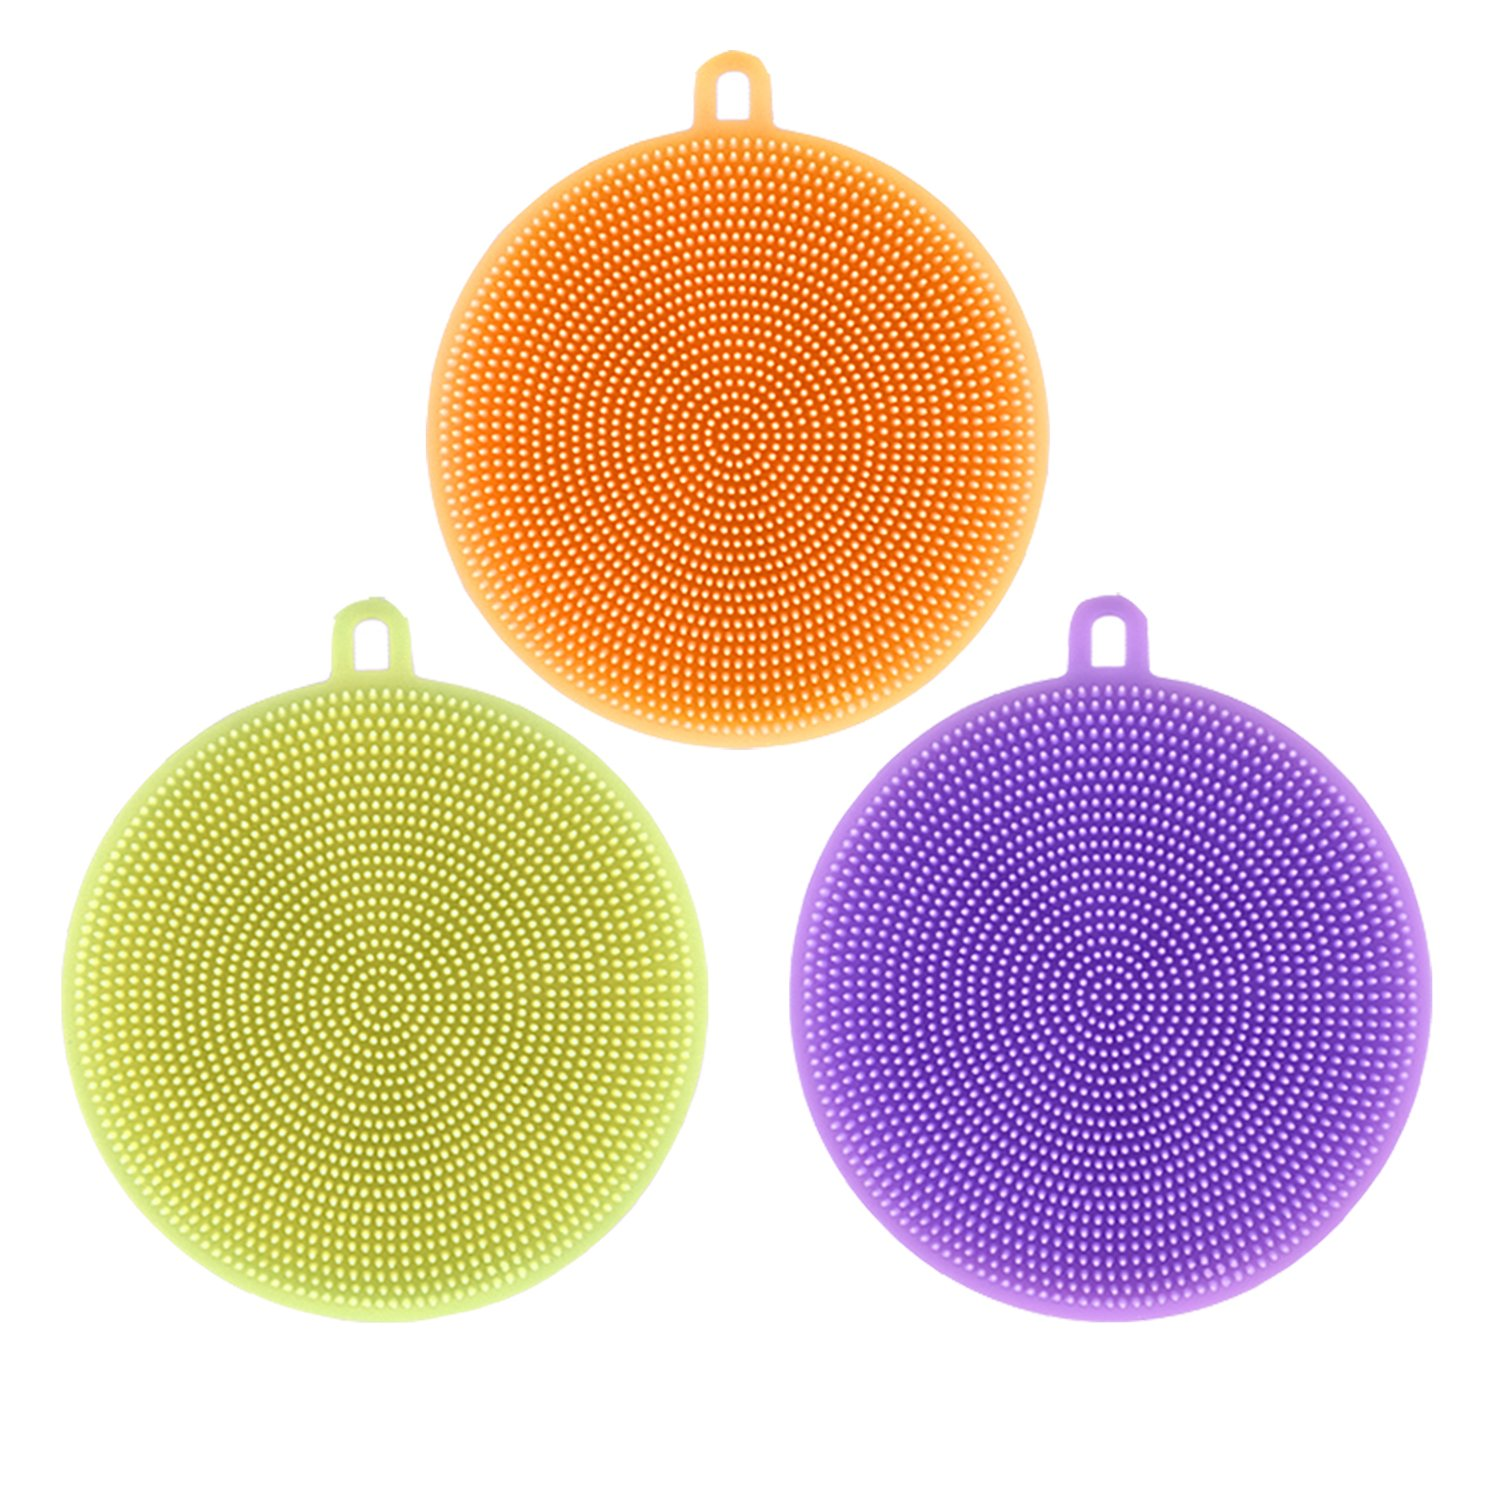 Accdata Silicone Sponges, Food-Grade Mildew-Free Silicone Dishwashing Scrubber for Washing Pot, Pan, Bowl, Fruit and Vegetables – 3Pcs